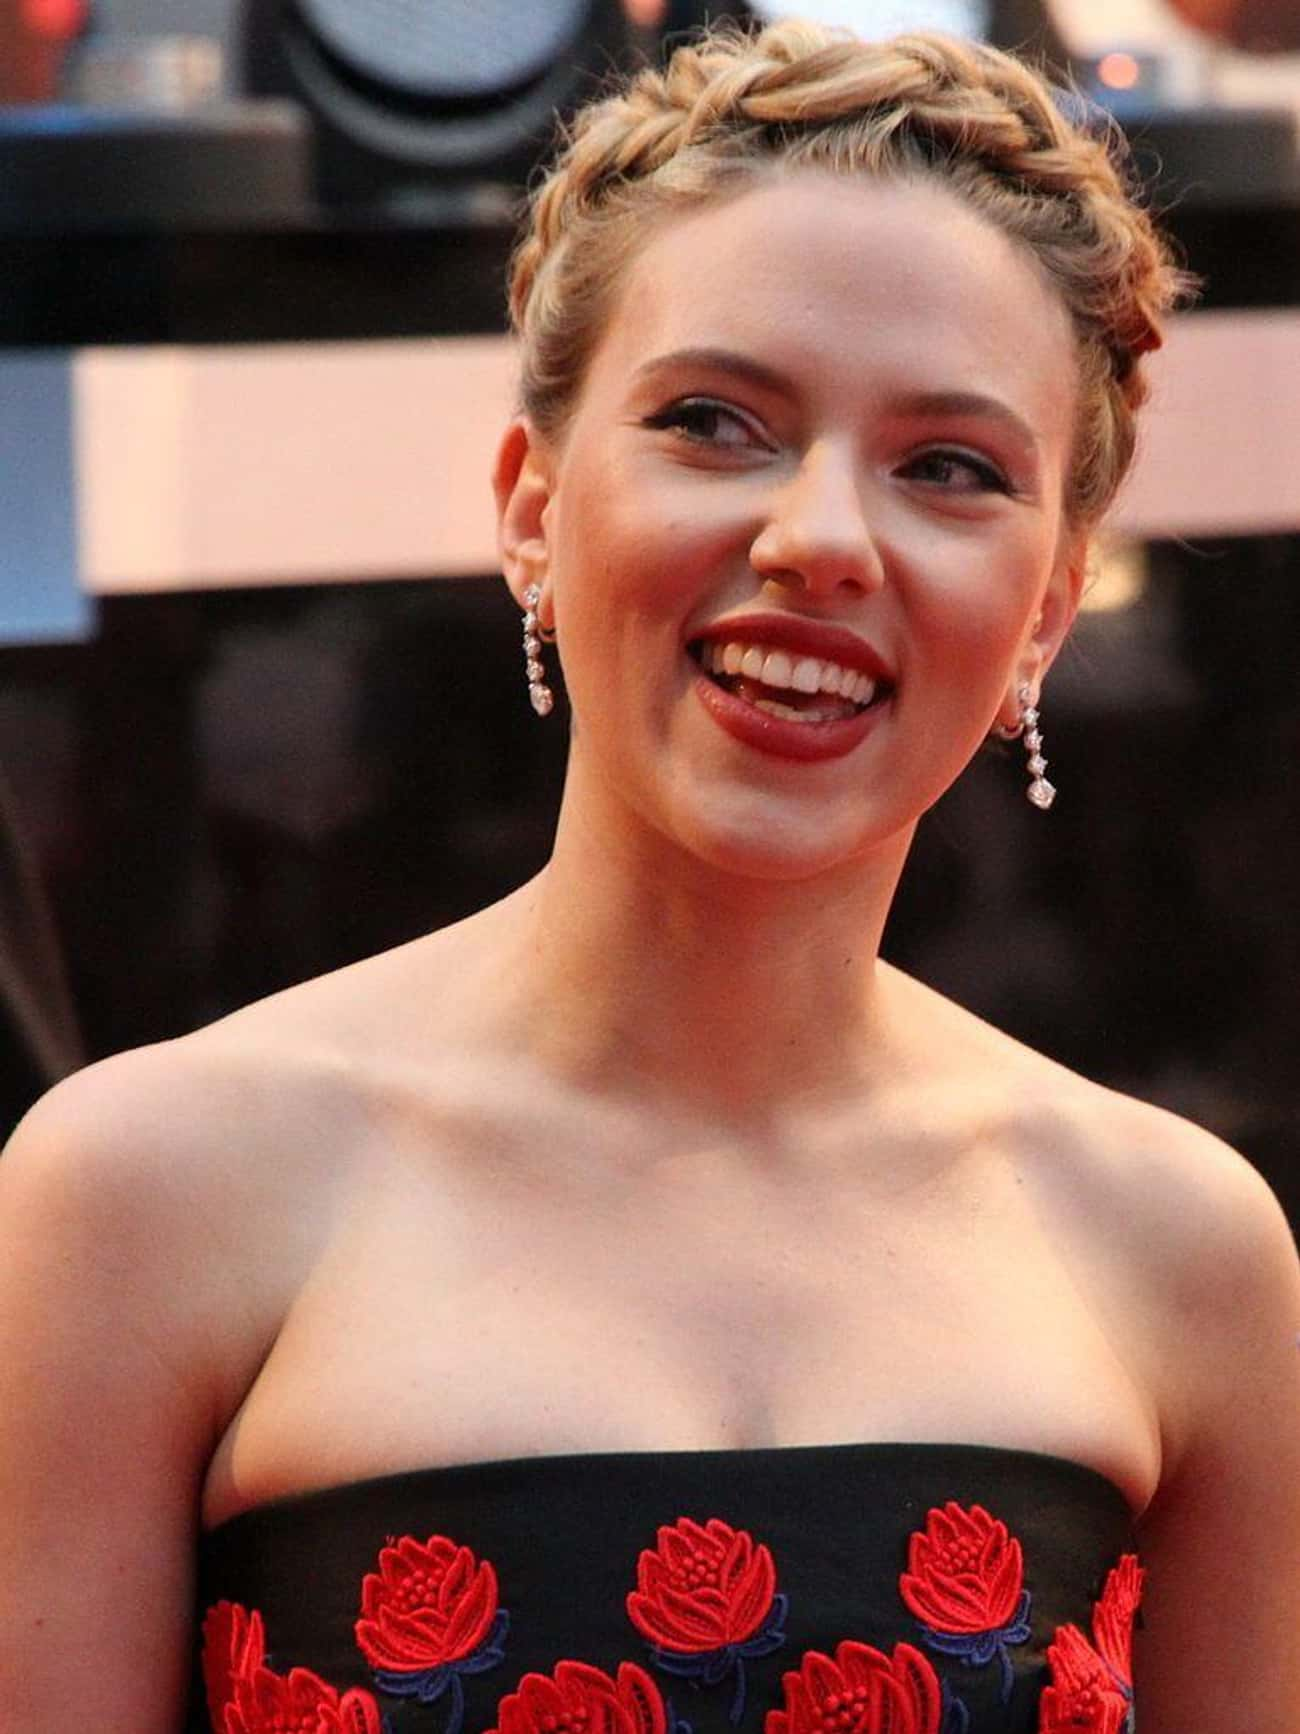 Scarlett Johansson is listed (or ranked) 1 on the list 20+ Celebrities Who Love To Cook